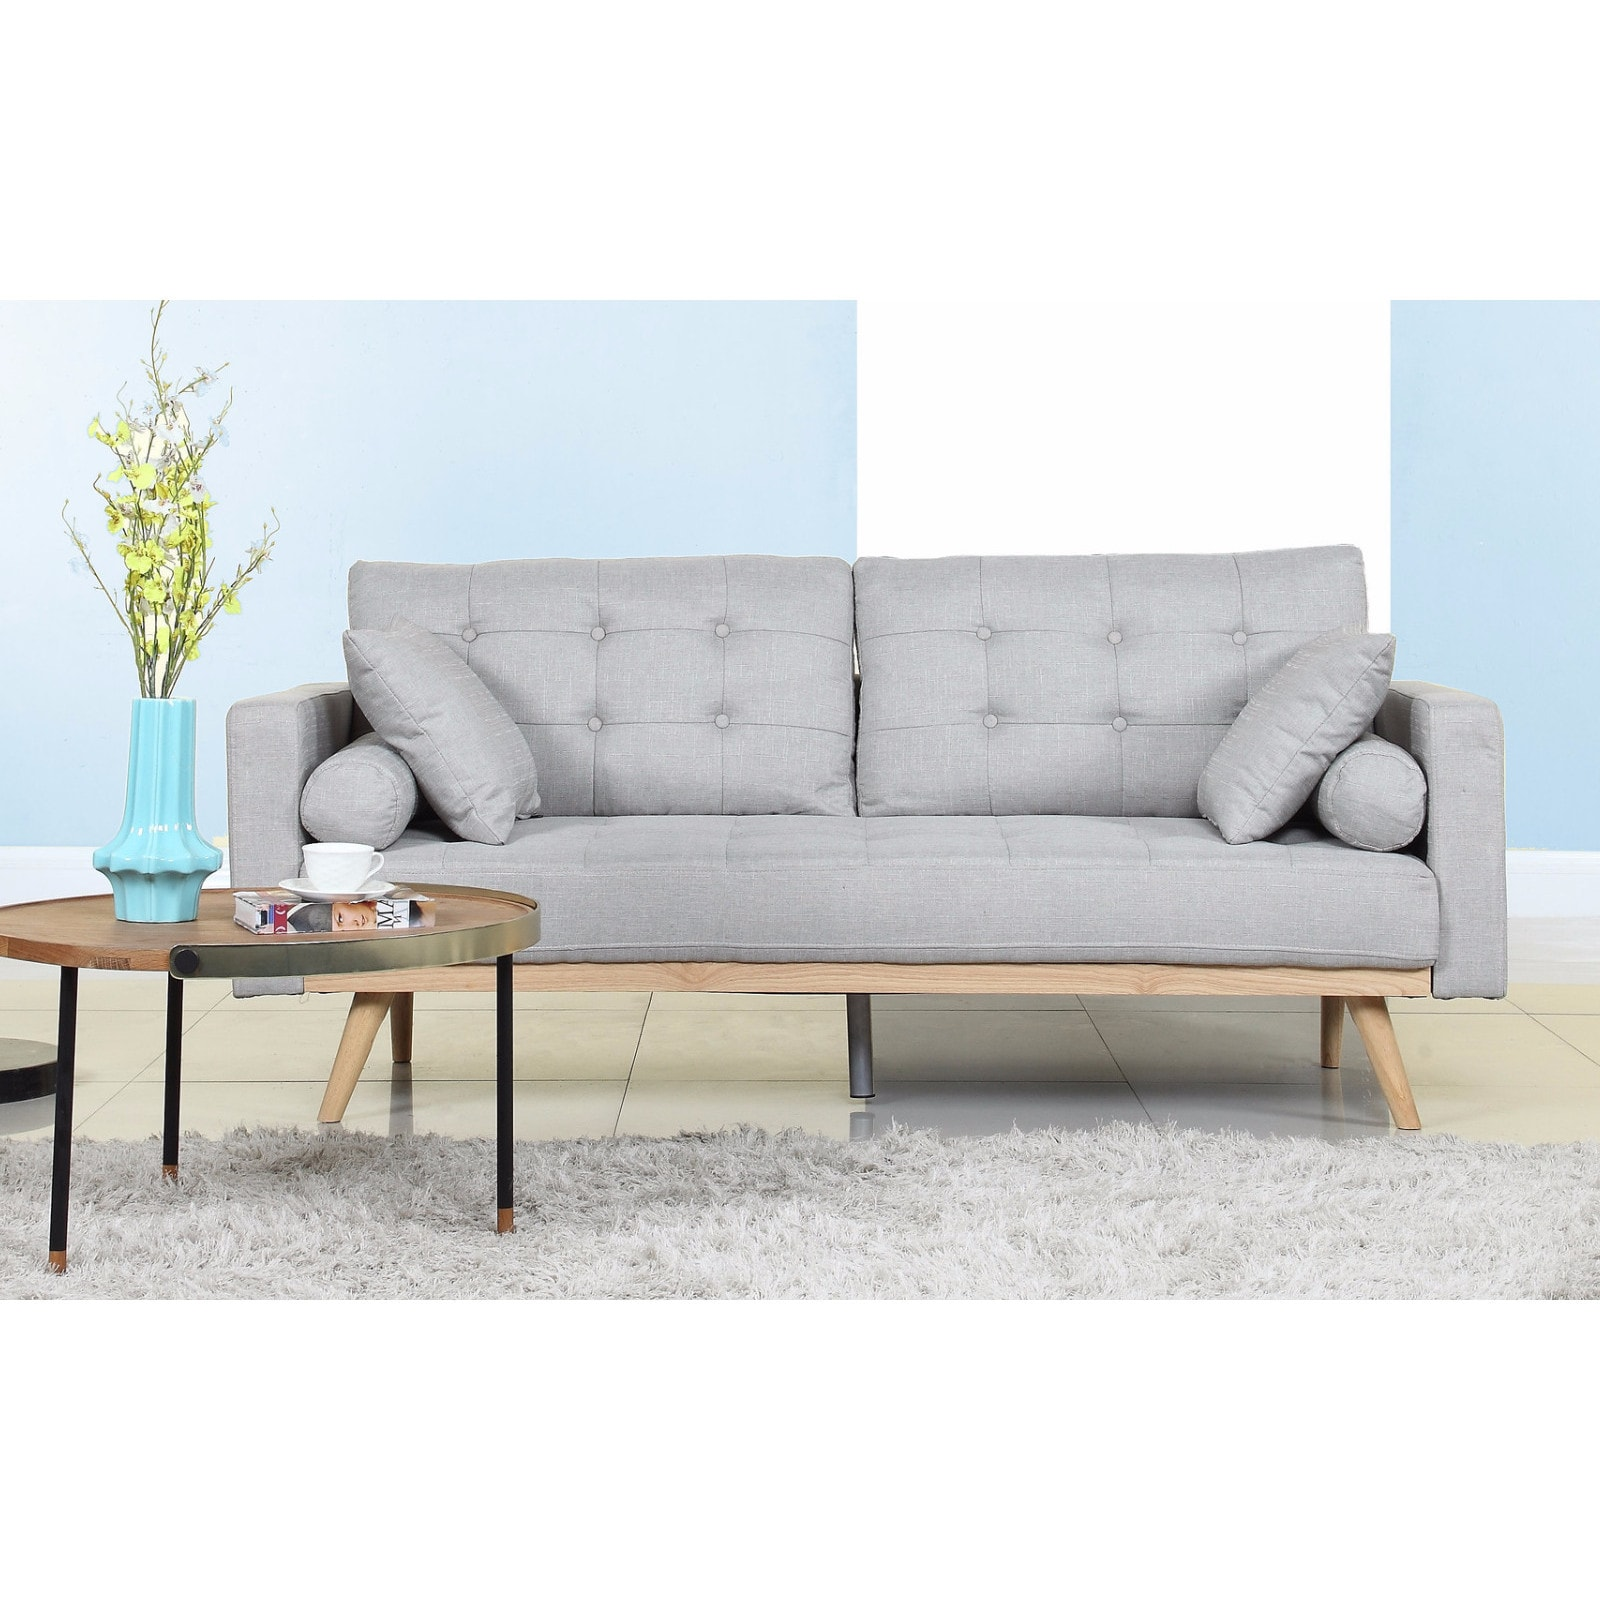 Chesterfield Sofa Samt Rosa Buy Fabric Sofa Online At Overstock Our Best Living Room